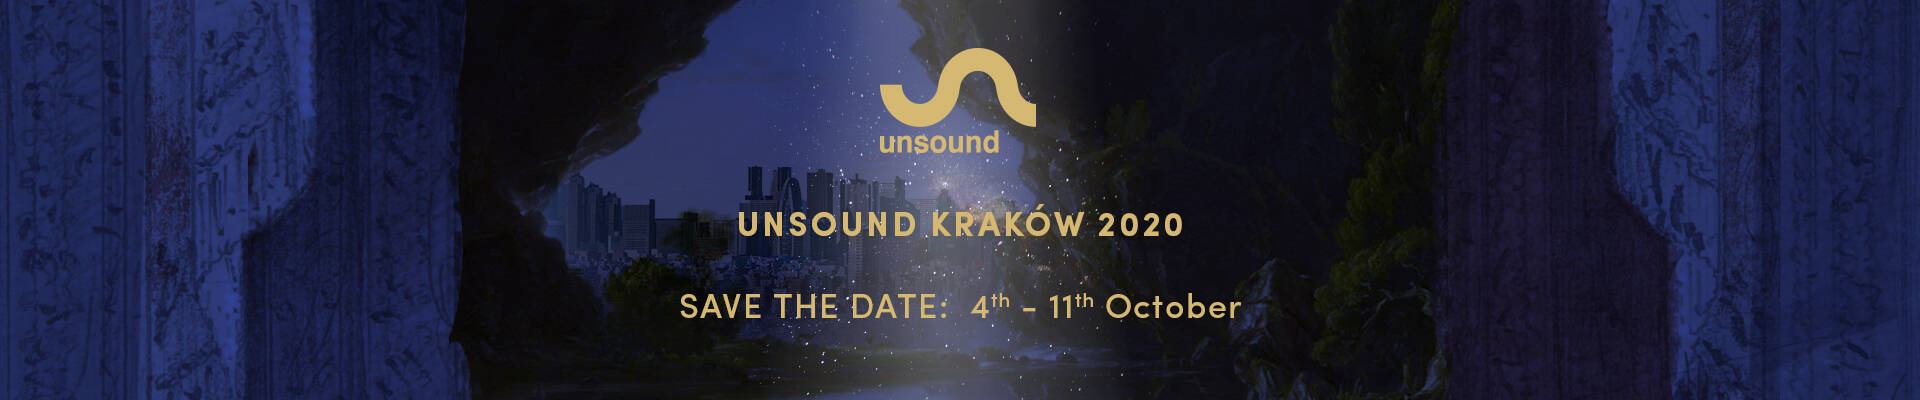 Unsound 2020 Dates Announced. Friends of Unsound and Solidarity With The Earth Initiatives Continue.